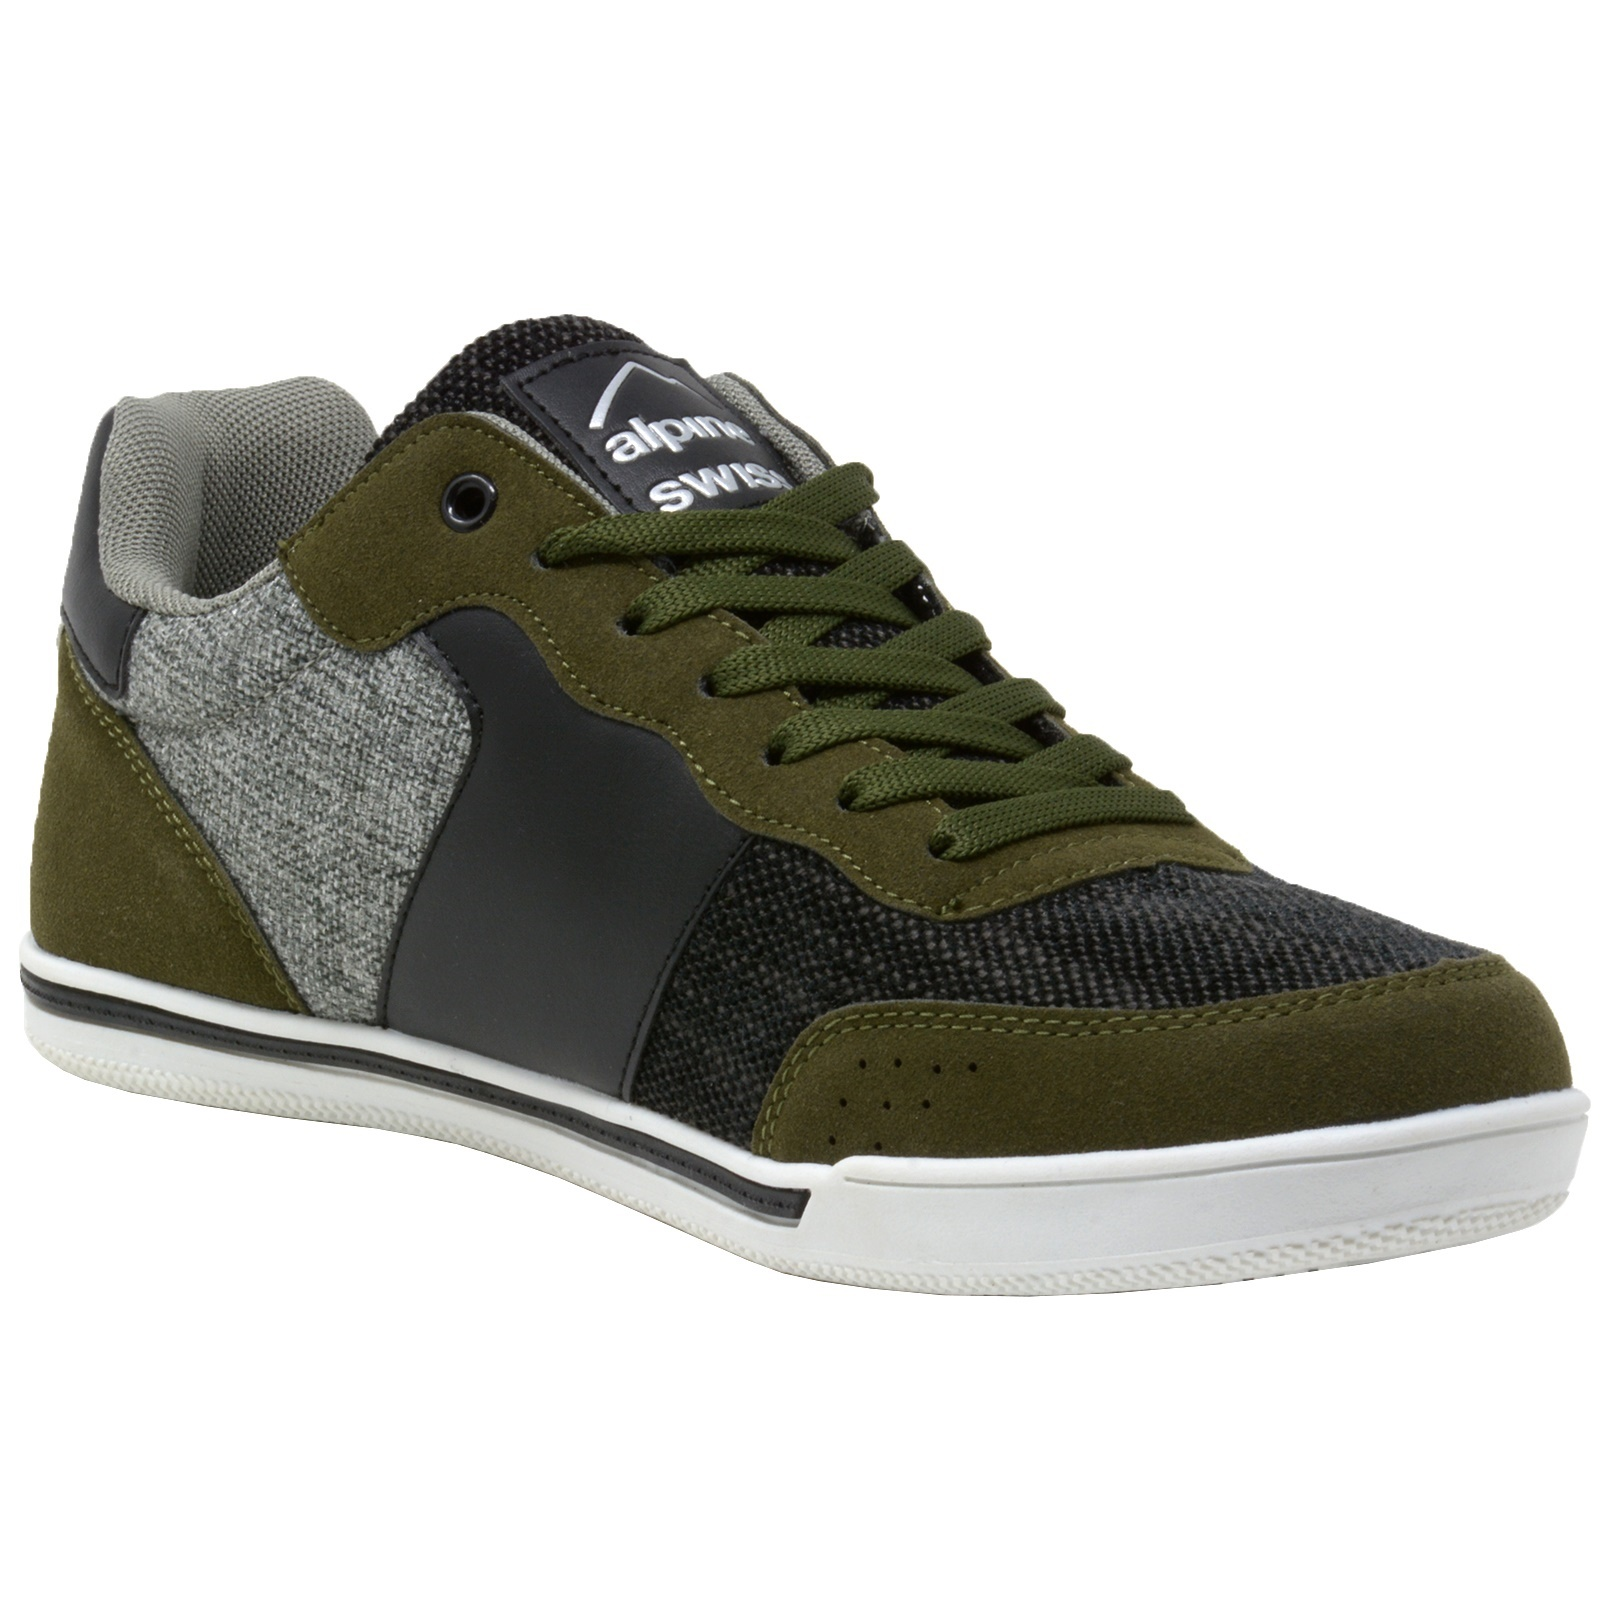 Alpine-Swiss-Liam-Mens-Fashion-Sneakers-Suede-Trim-Low-Top-Lace-Up-Tennis-Shoes thumbnail 47